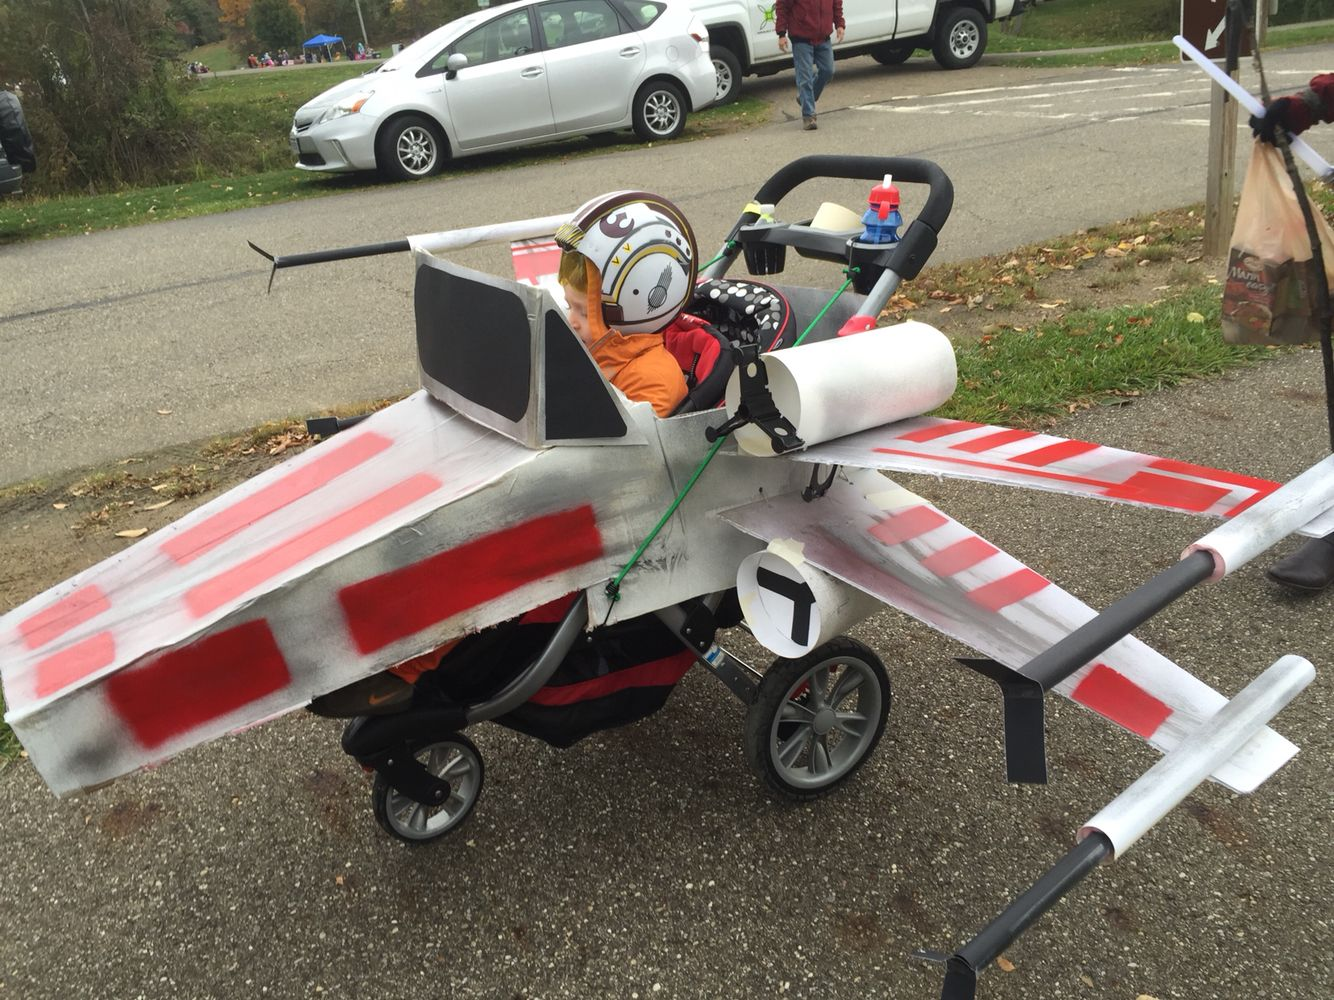 x wing stroller and jedi pilot halloween costume 2015 pregnancy